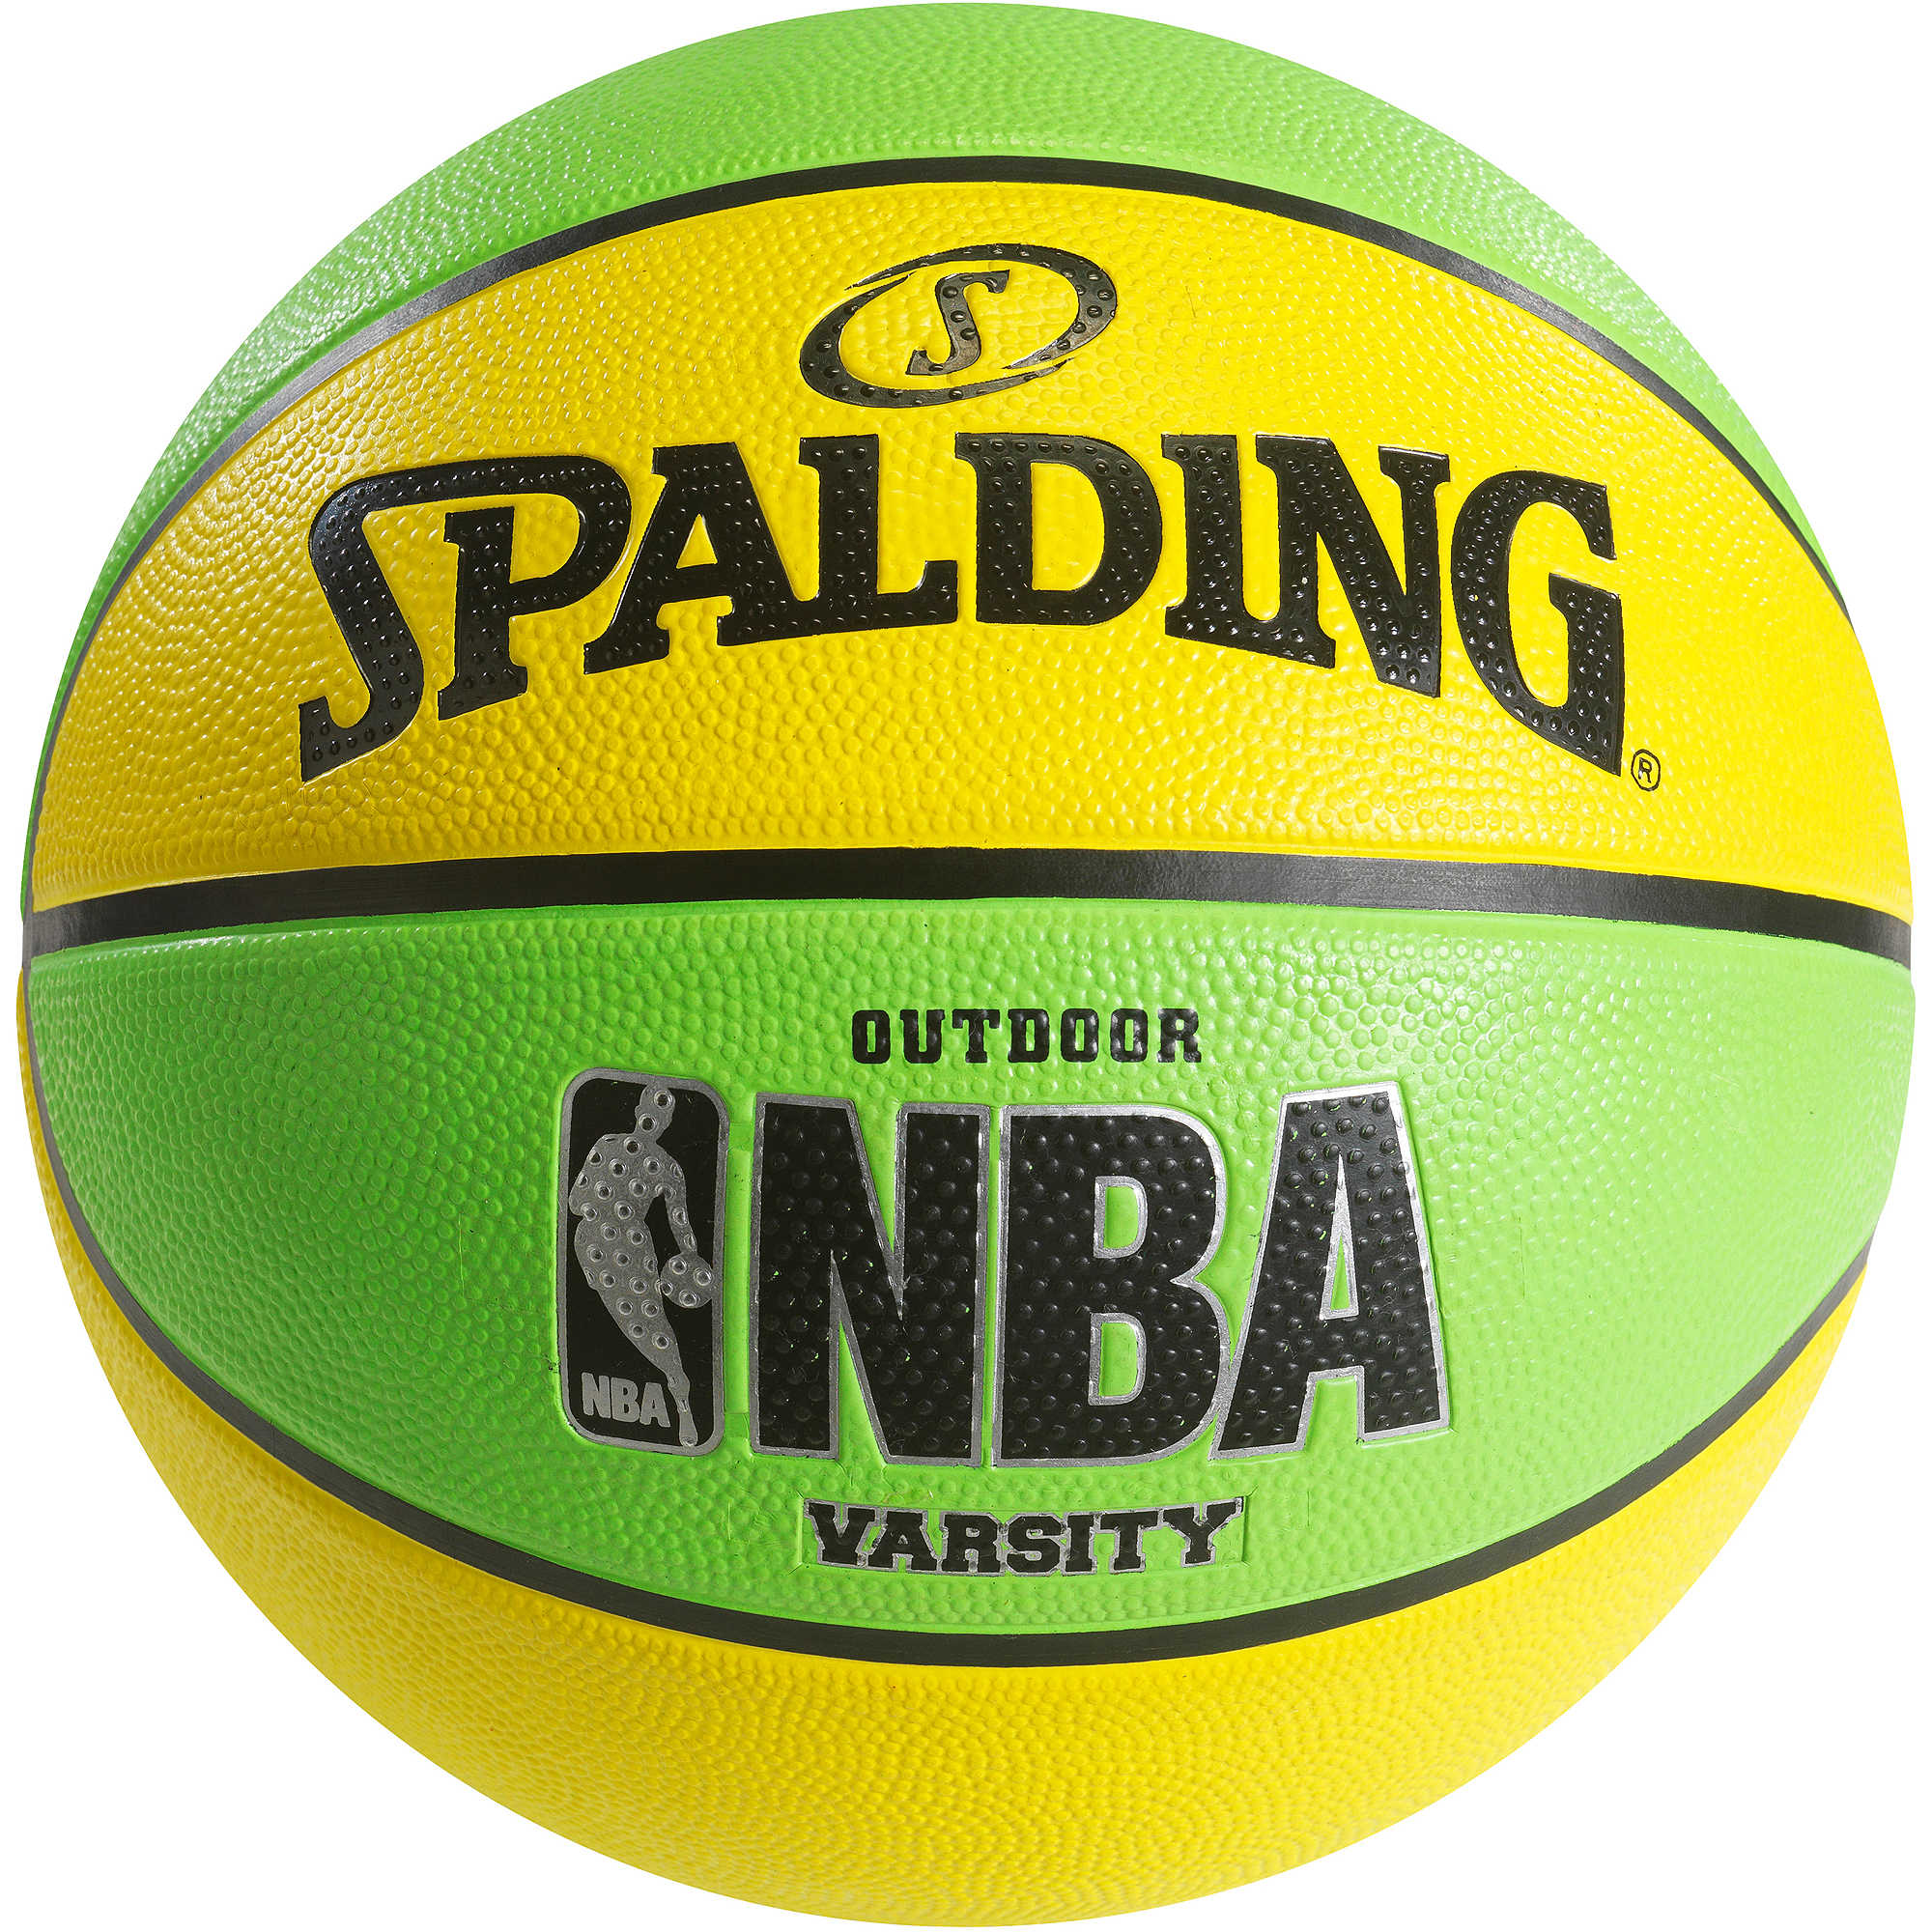 "Spalding NBA Varsity Neon Green/Yellow 29.5"" Basketball"